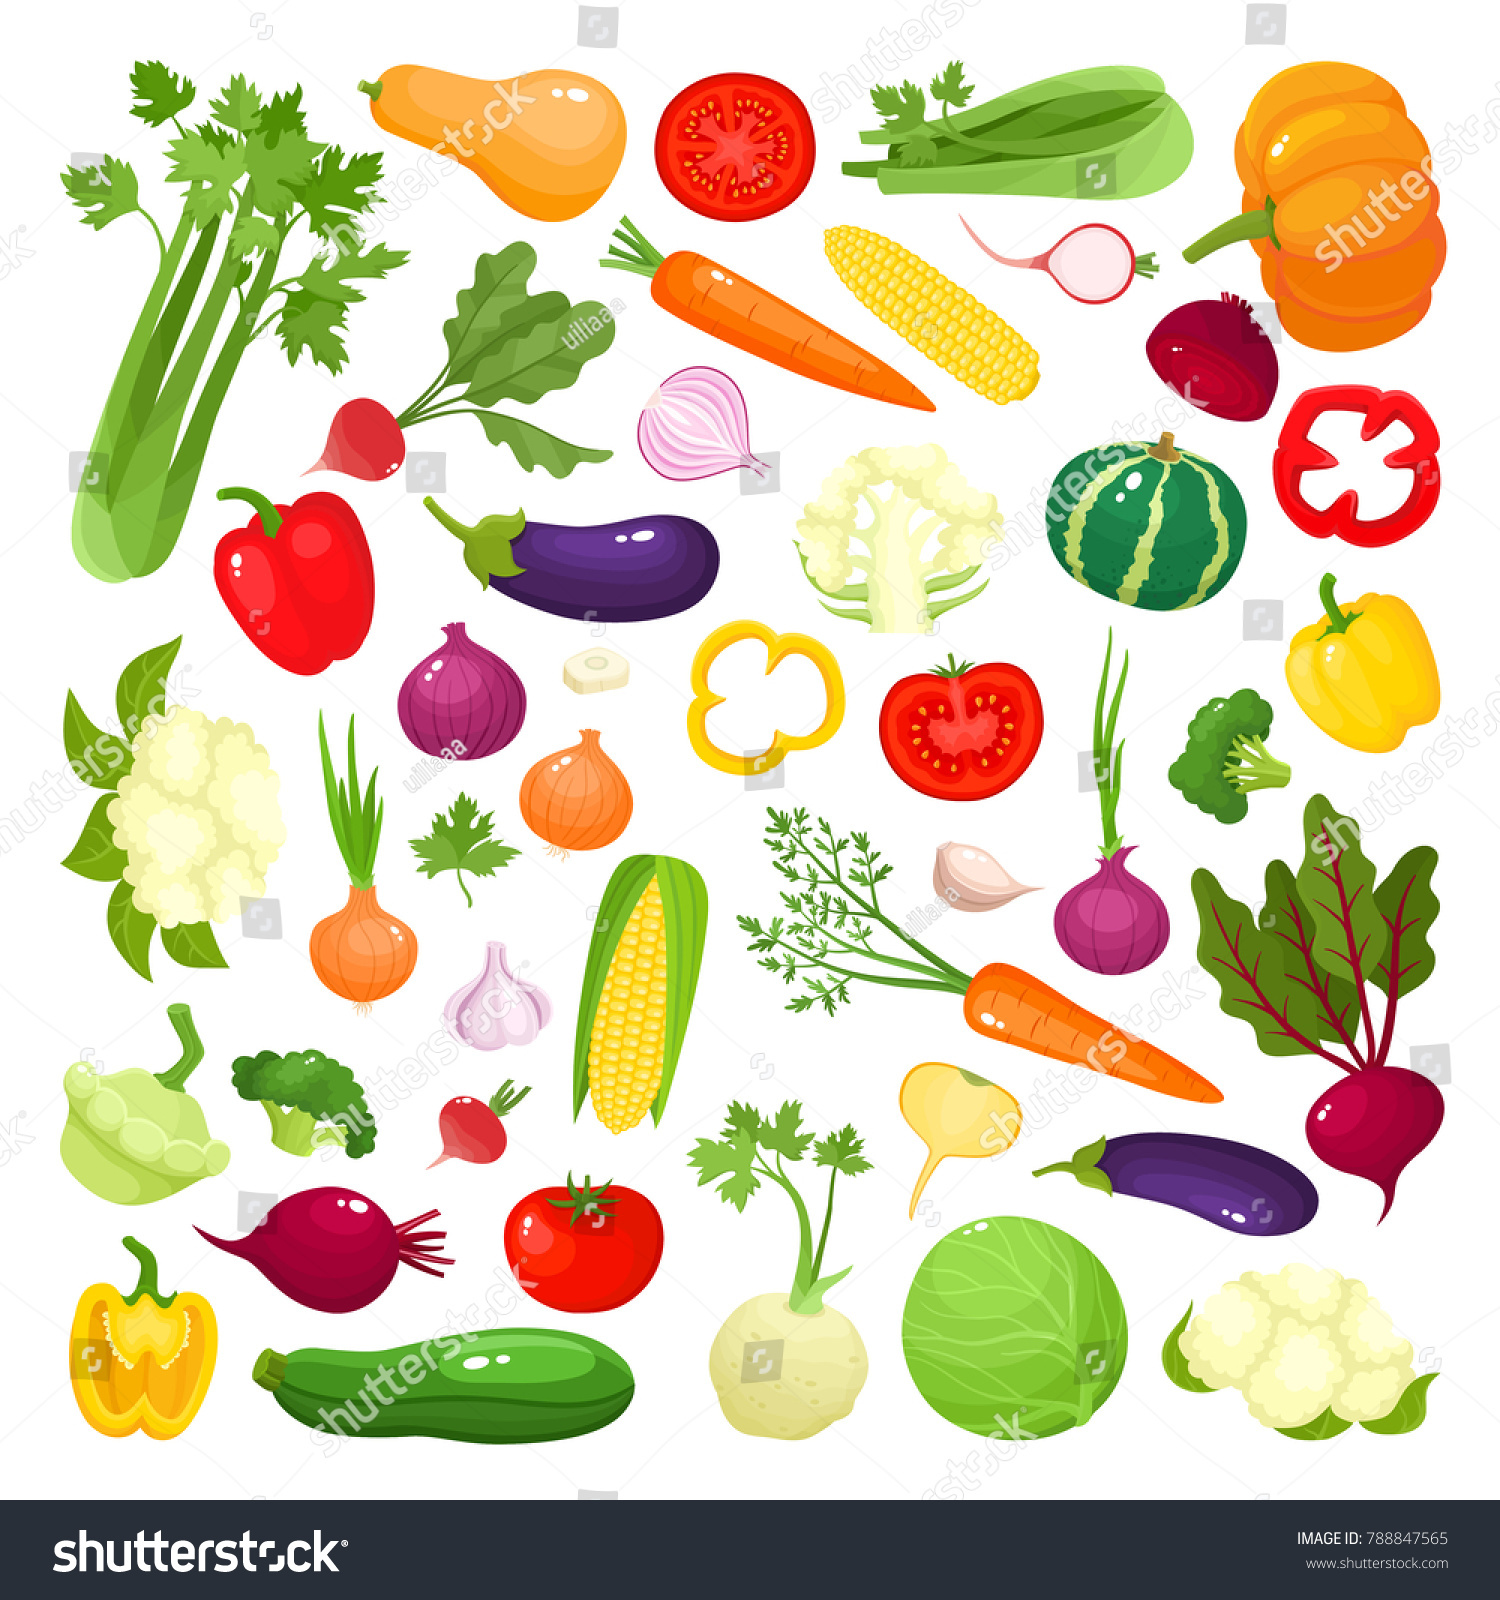 Bright vector illustration of colorful vegetables. Fresh cartoon organic vegetable isolated on white background used for magazine, book, poster, card, menu cover, web pages. #788847565